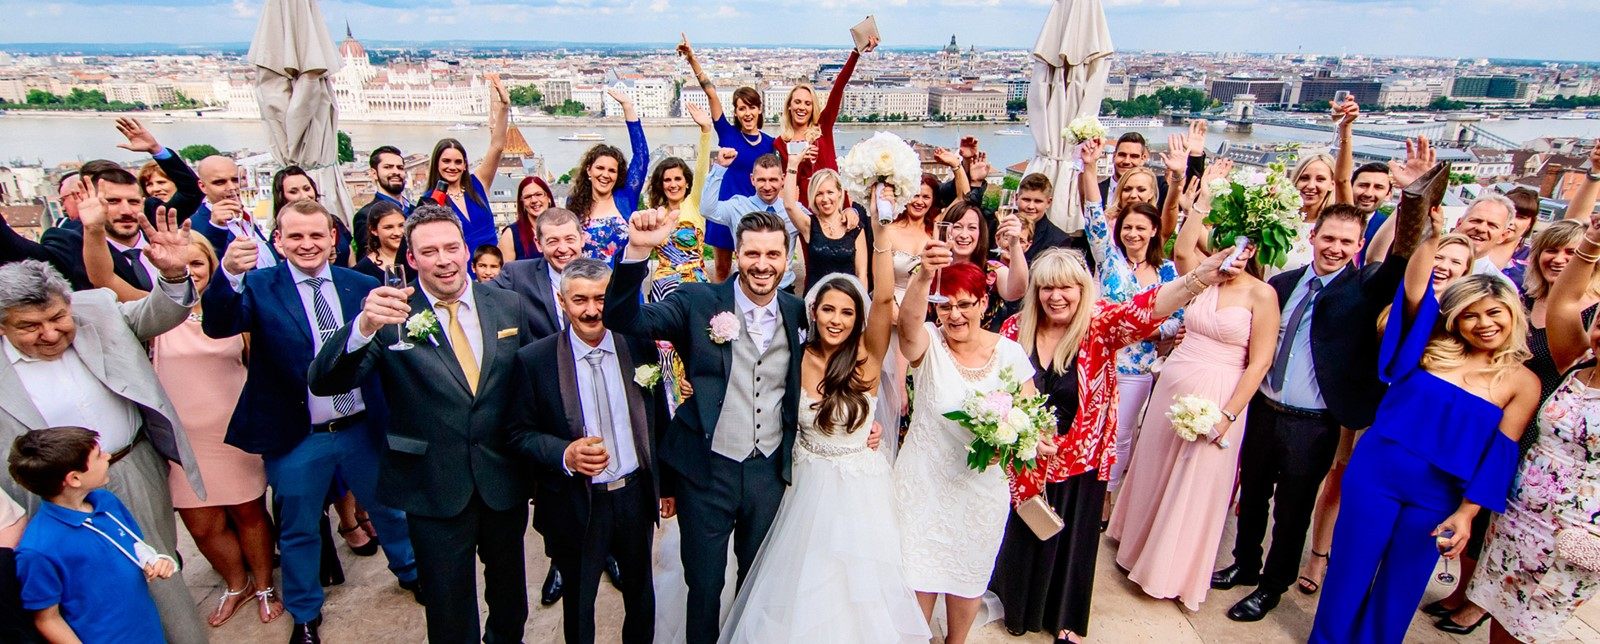 Wedding party at fisherman's bastion, budapest